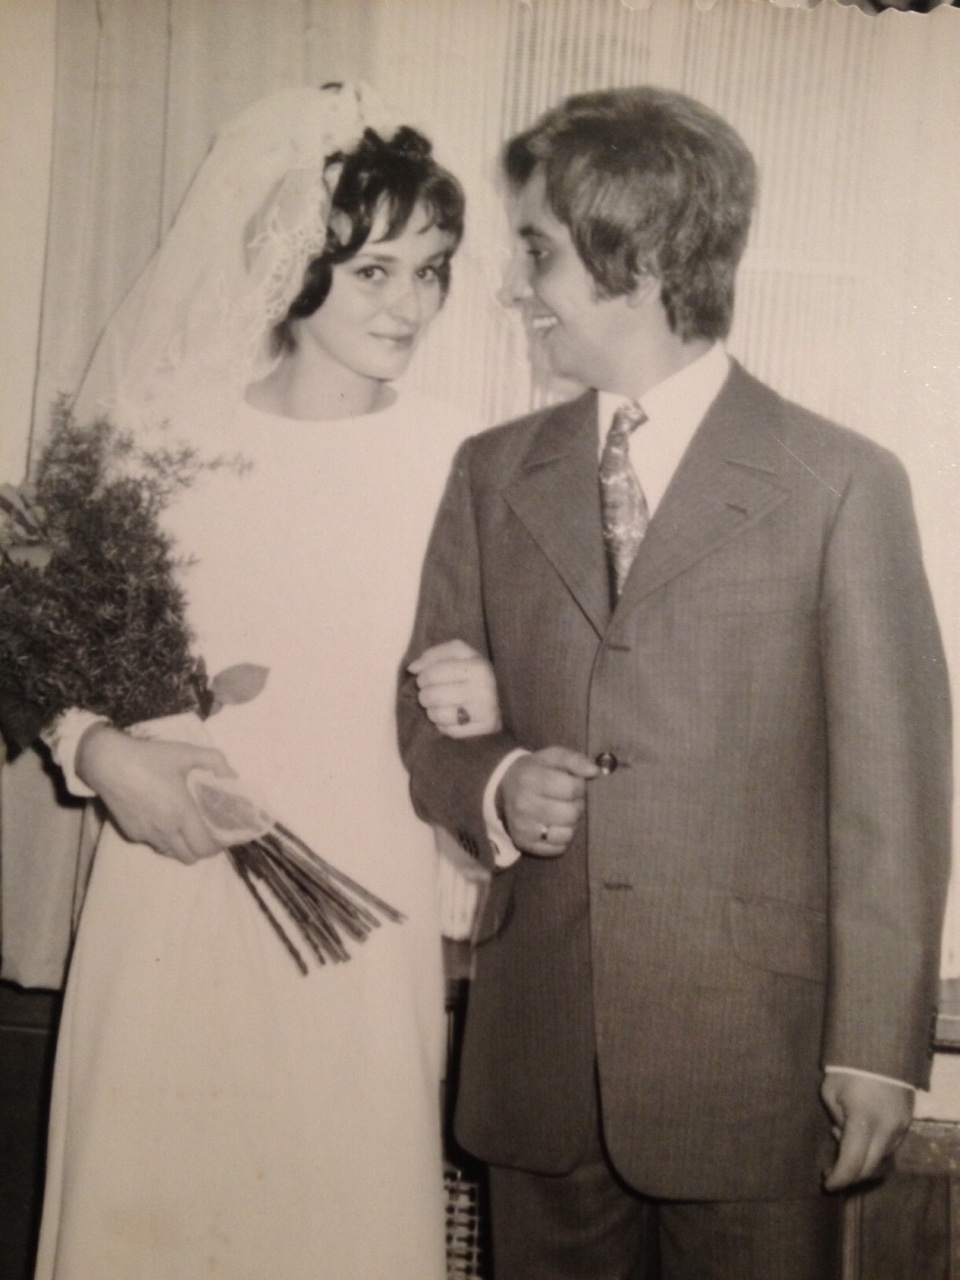 Our parents in 1970. They got married despite their families who opposed the union.